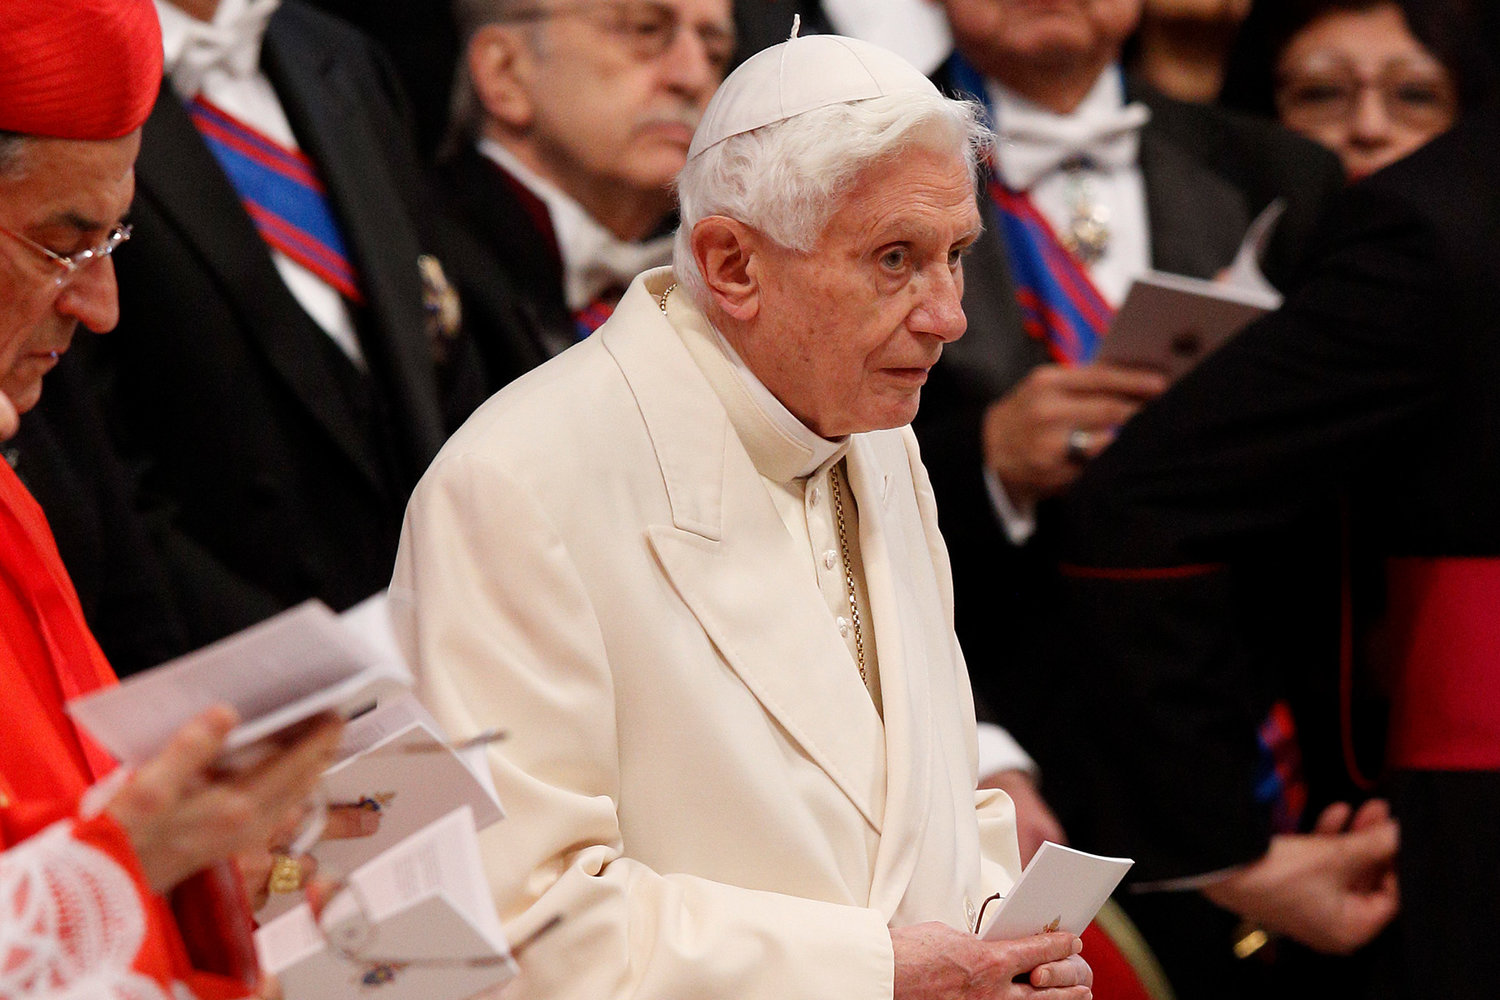 Retired Pope Benedict XVI attends a consistory for the creation of new cardinals in St. Peter's Basilica at the Vatican in this Feb. 22, 2014, file photo. Pope Benedict has released an article addressing the roots of the clerical sexual abuse crisis in the Catholic Church and how the Church should respond now.